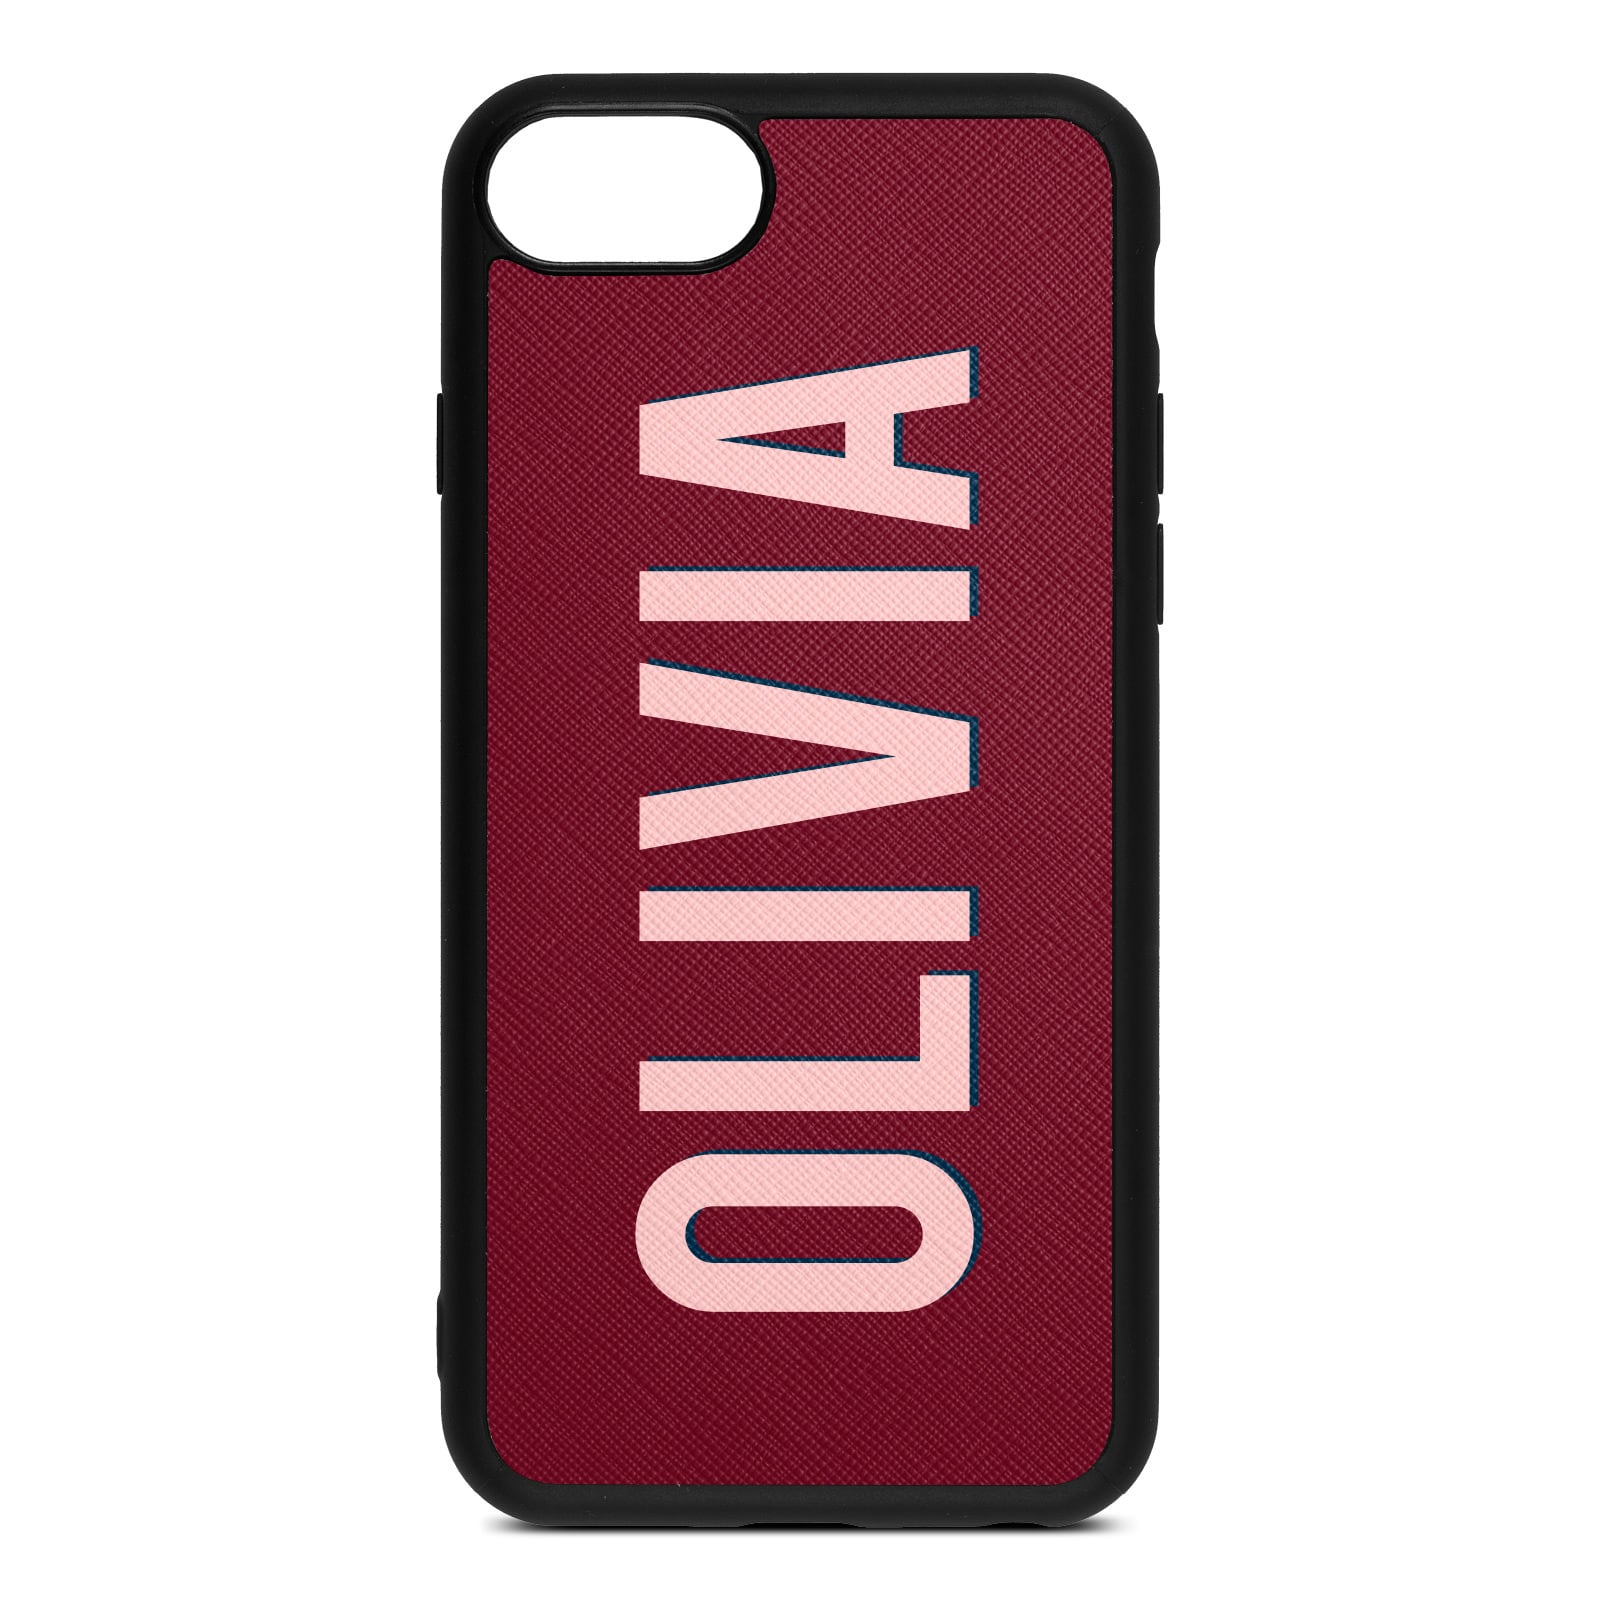 Personalised Dark Red Saffiano Leather iPhone 8 Case